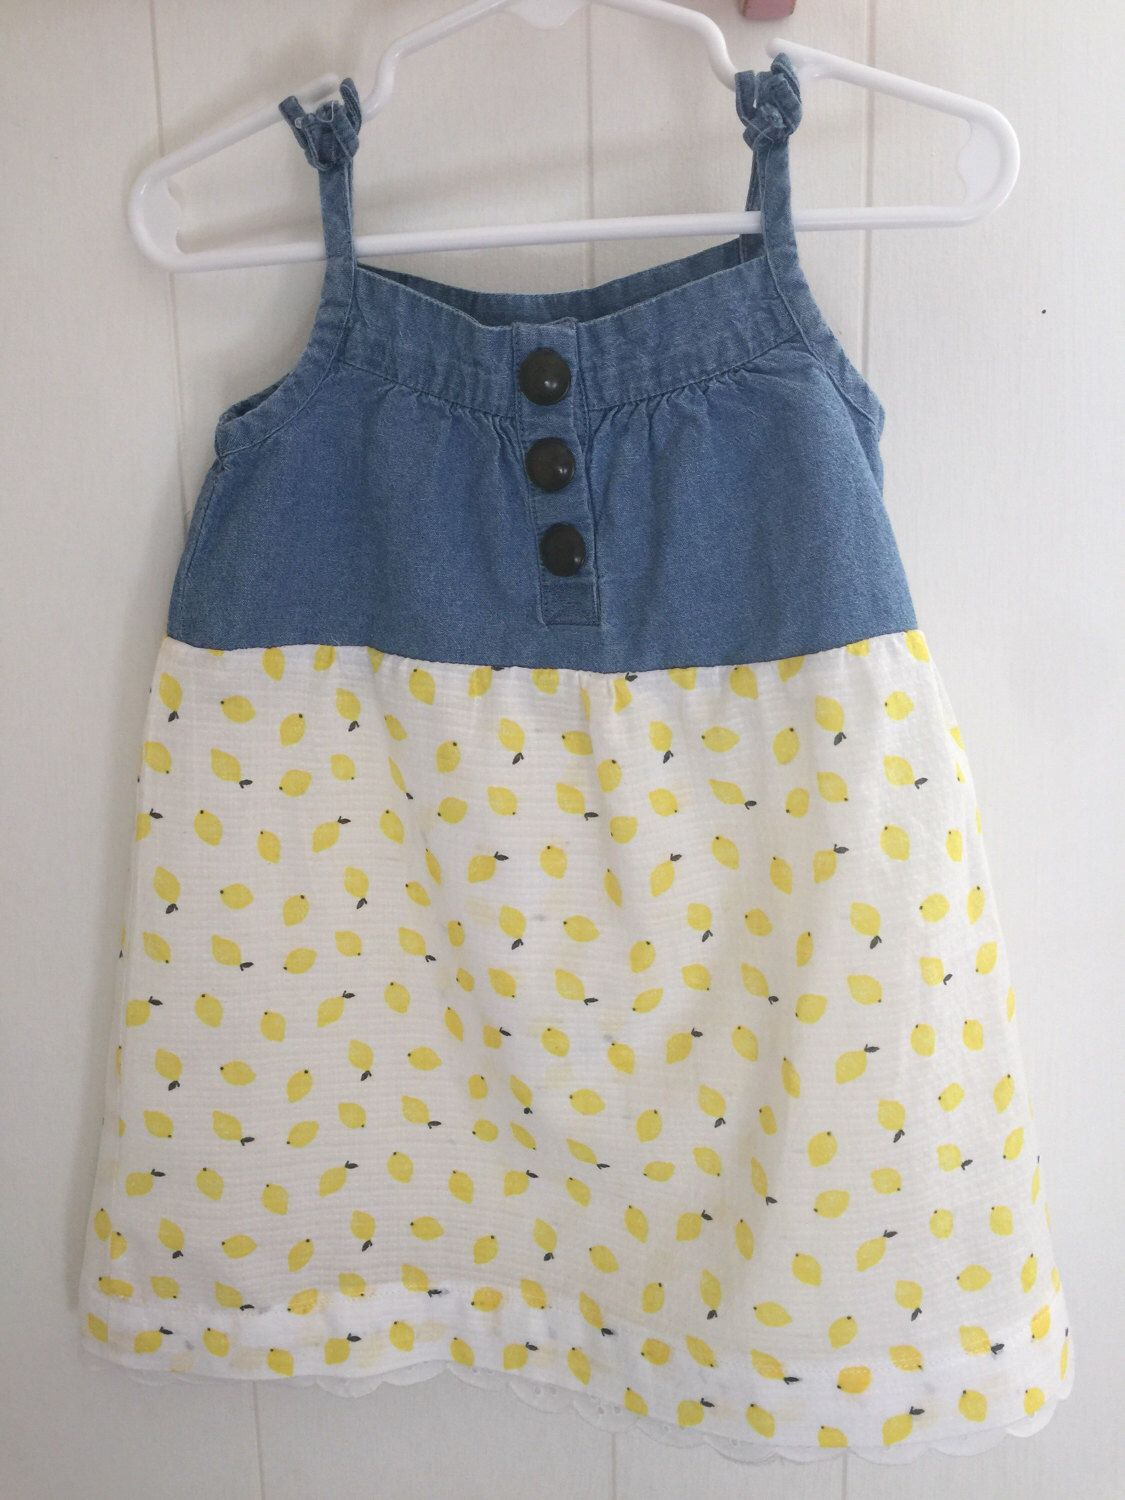 Girls Dress size 18-24 Months. Lemons and Jean Shabby Chic Sundress by AddisonsUpcycles on Etsy https://www.etsy.com/listing/496906548/girls-dress-size-18-24-months-lemons-and